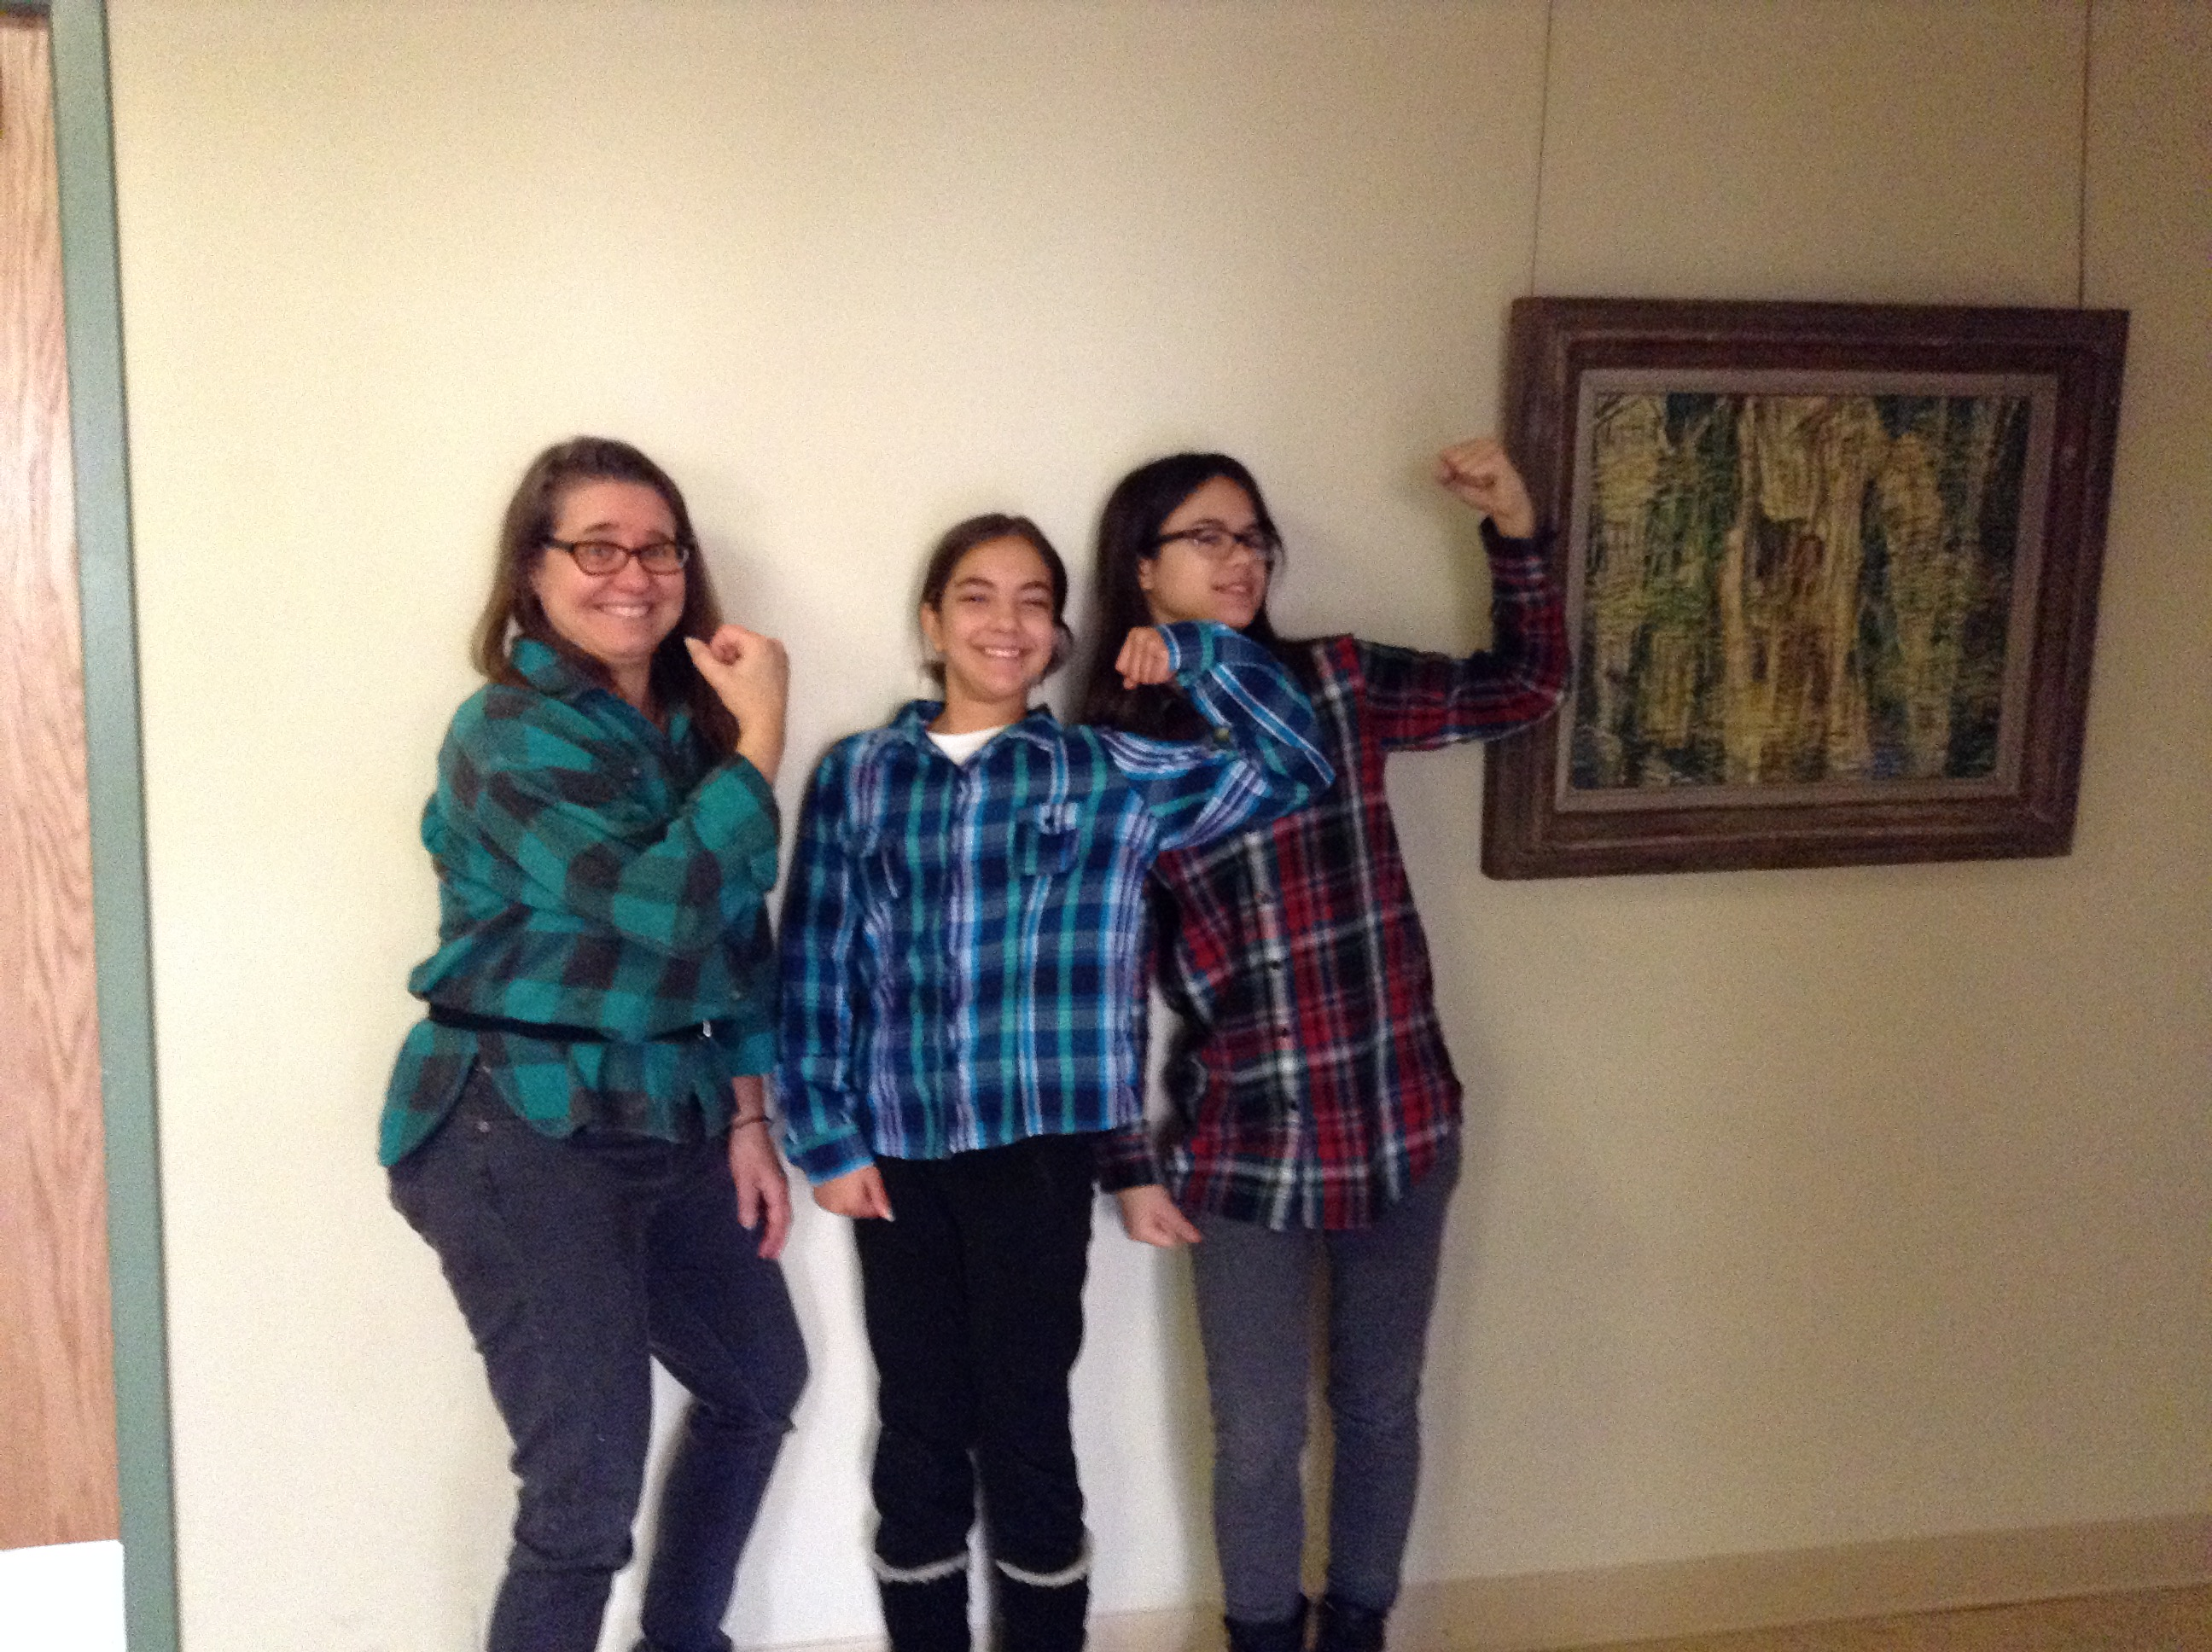 Middle/Upper School Art Teacher/Advisor Caroline J. Maw-Deis poses with students Alexa '21 and Emma '21 on LumberJack Day 2016